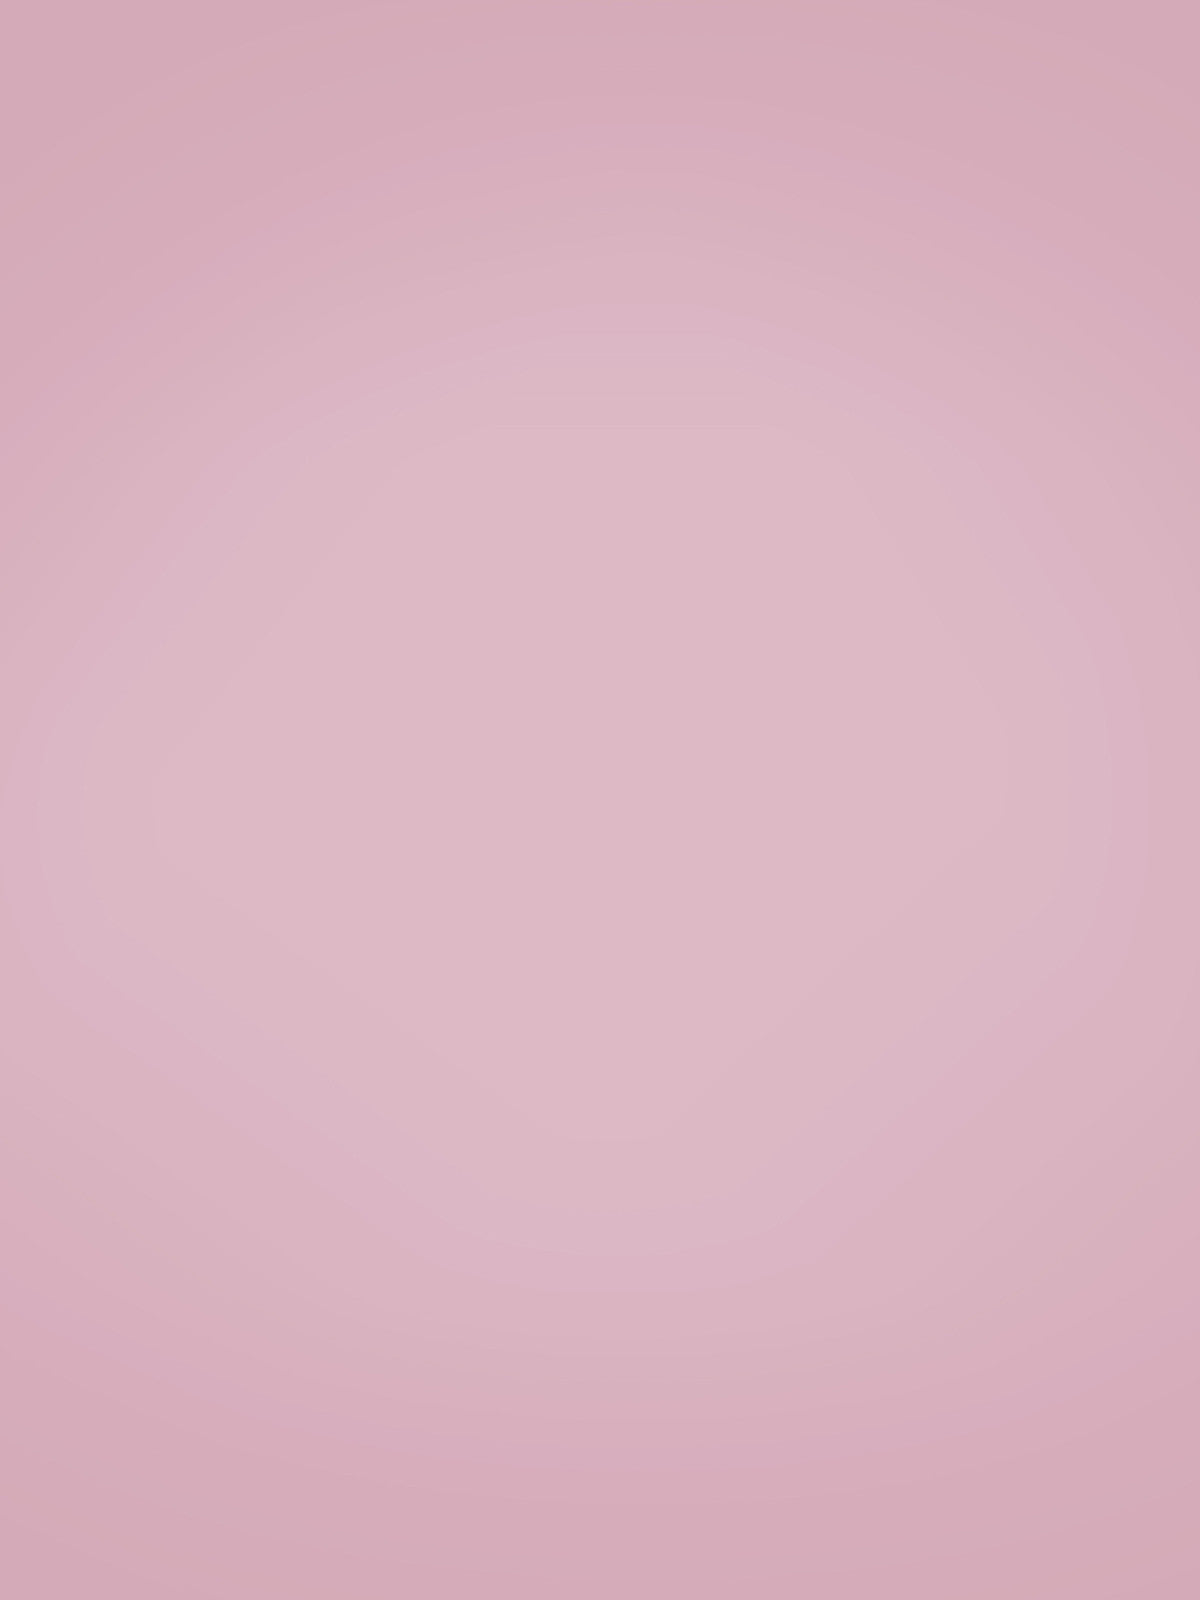 Dusty Rose Solid Photo Backdrop / 9106 - DropPlace